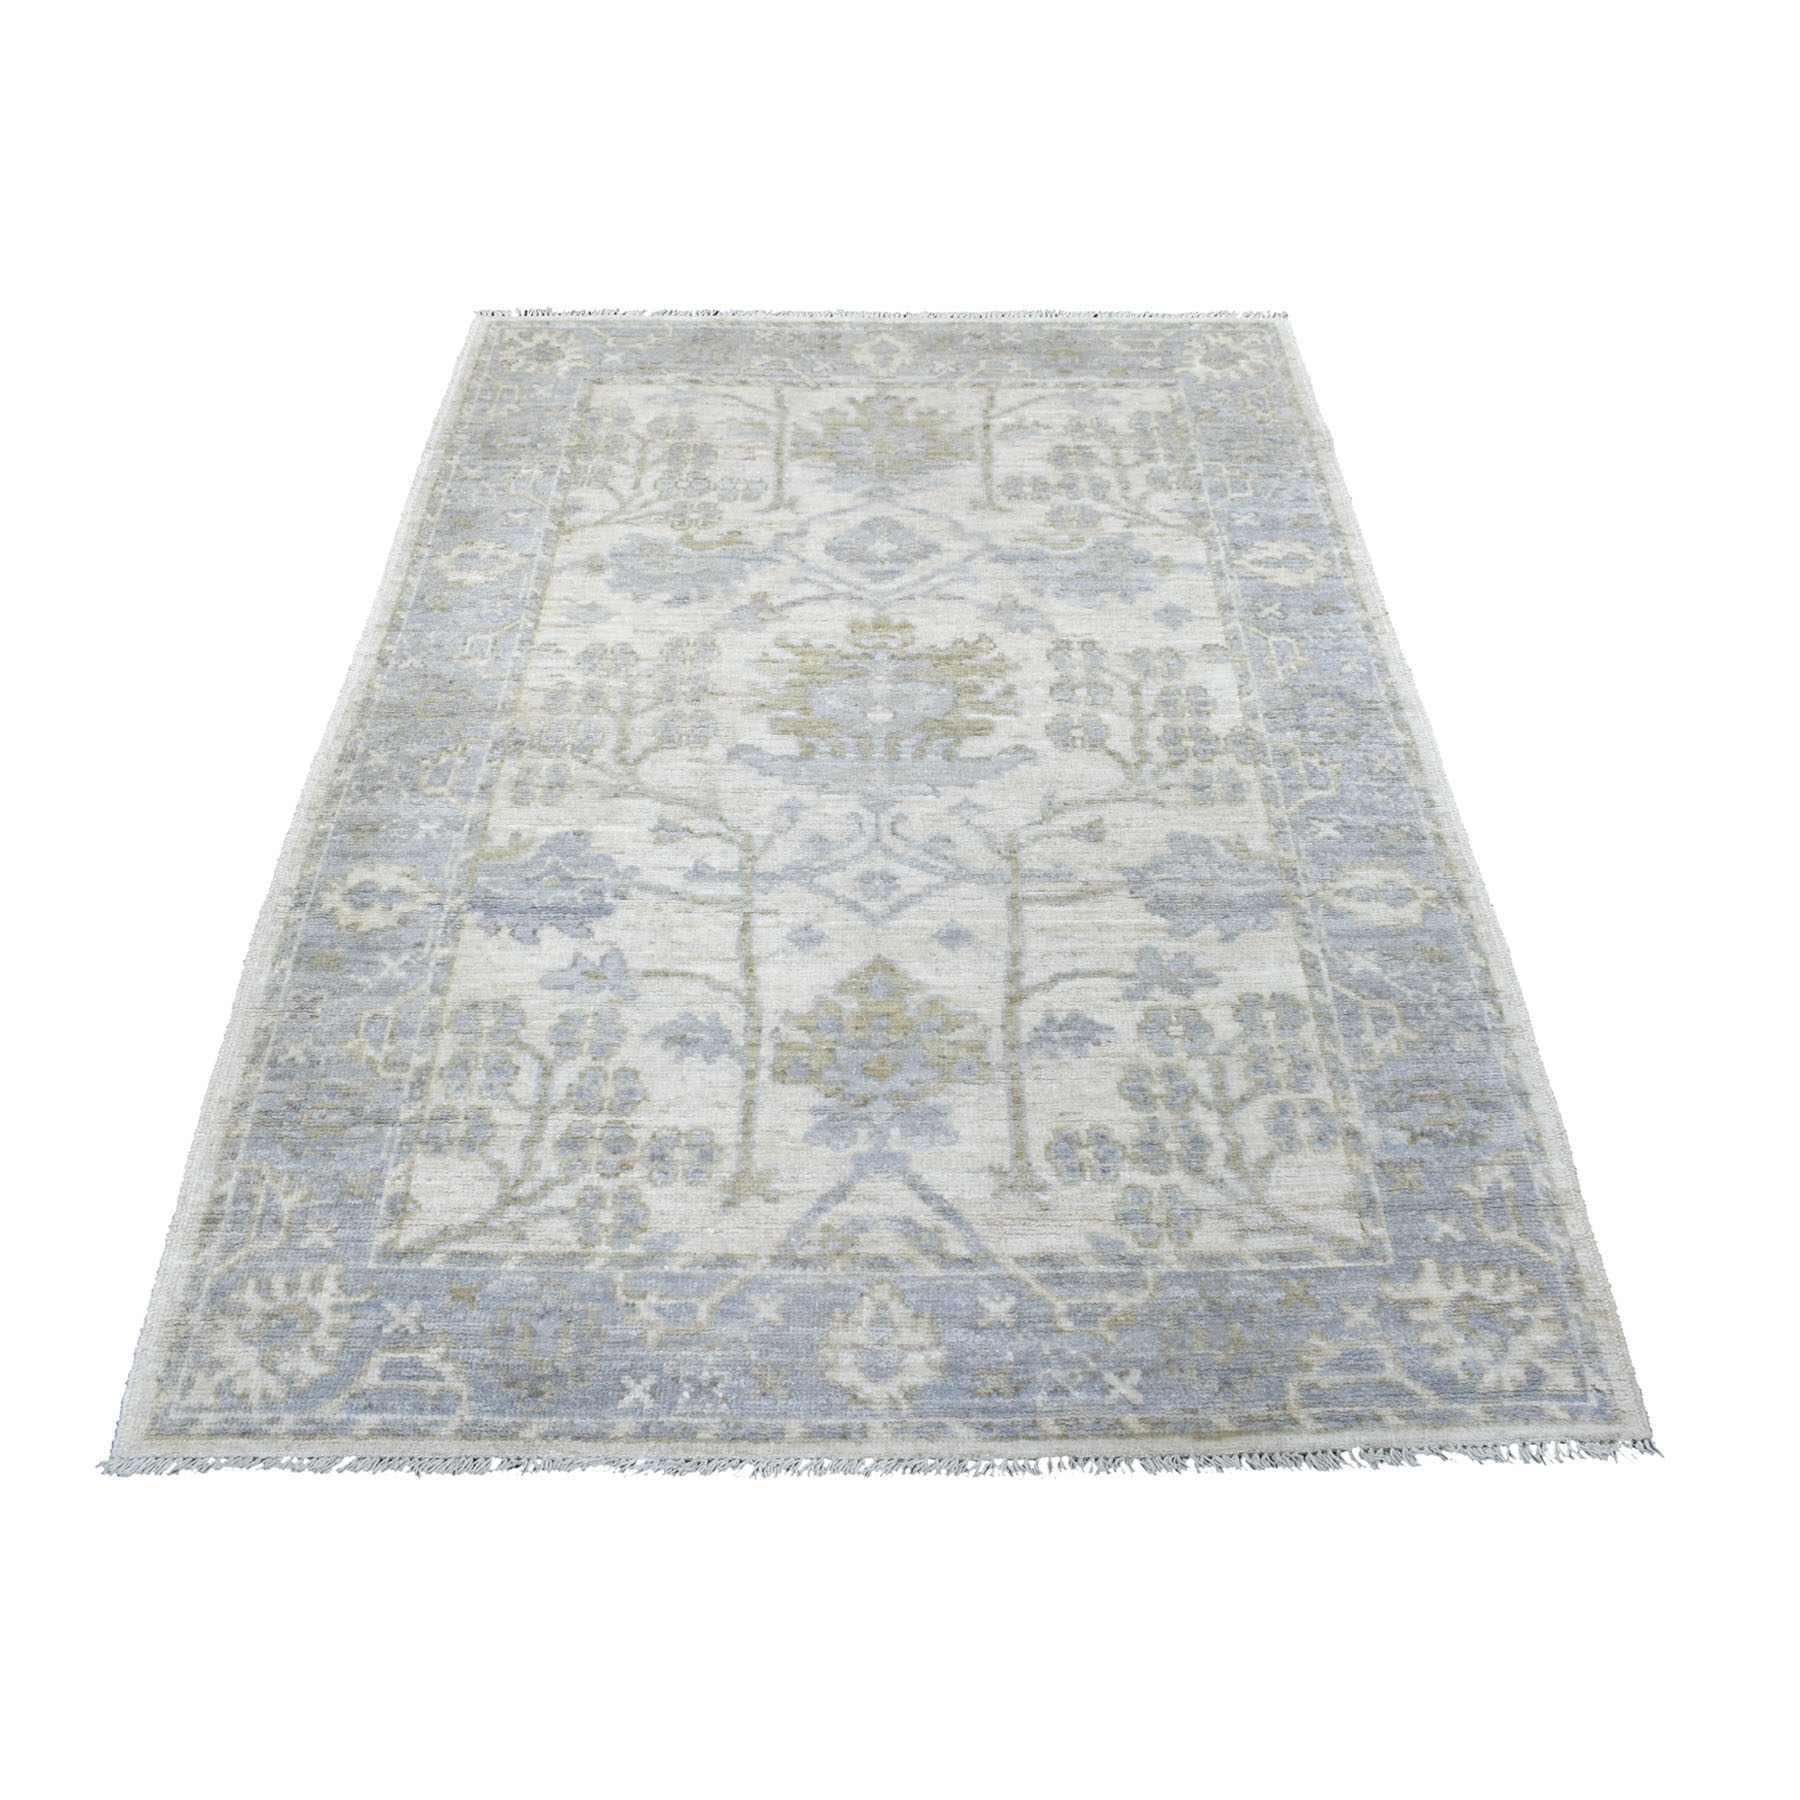 """4'2""""x6' Washed Out Gray Angora Oushak With Soft Velvety Wool Hand Knotted Oriental Rug"""